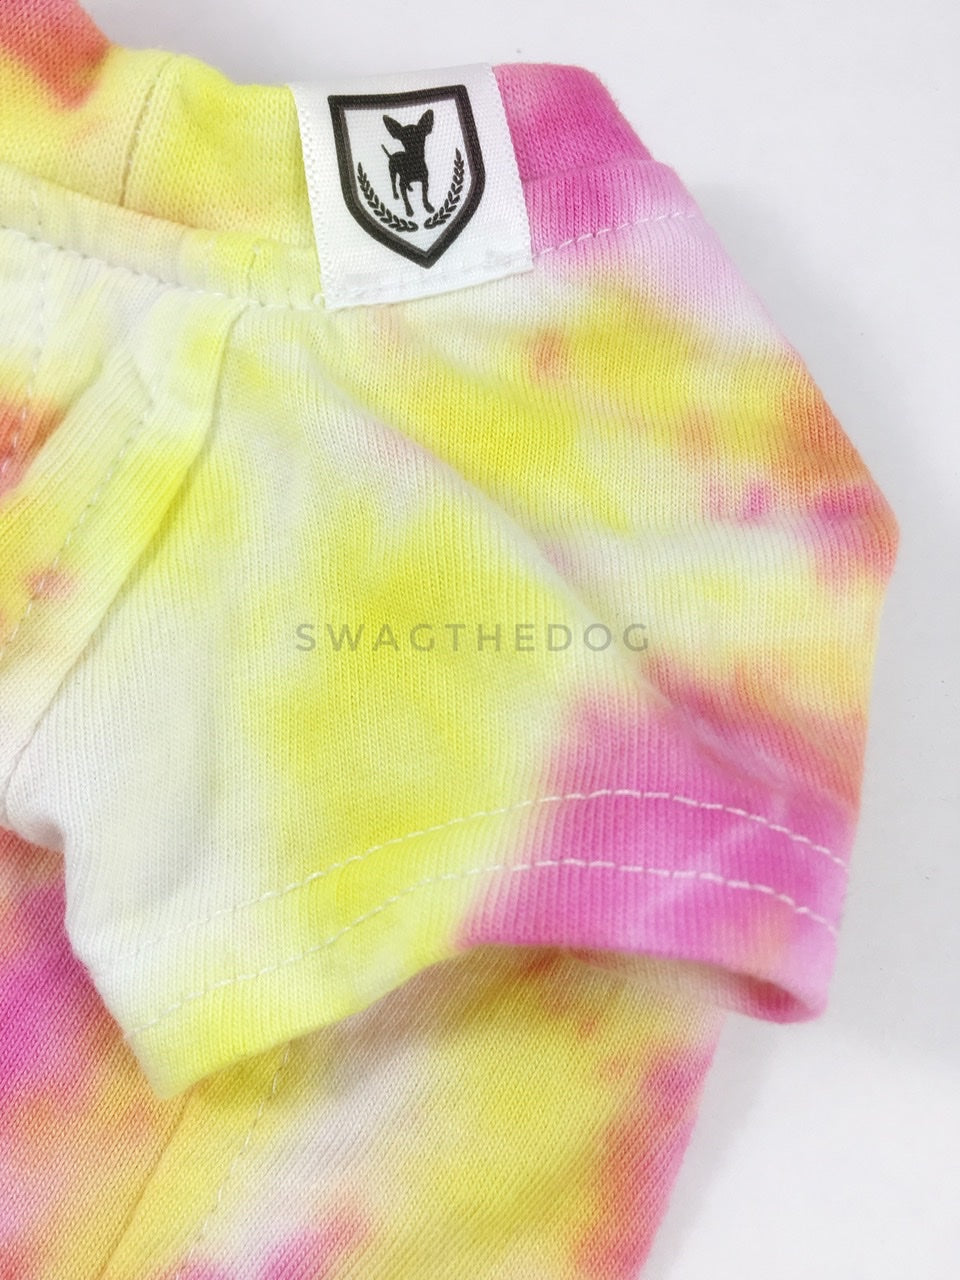 Swagadelic Cotton Candy Tie Dye Tee - Close-up of product front view. The hand tie-dyed tee with Pink and Yellow